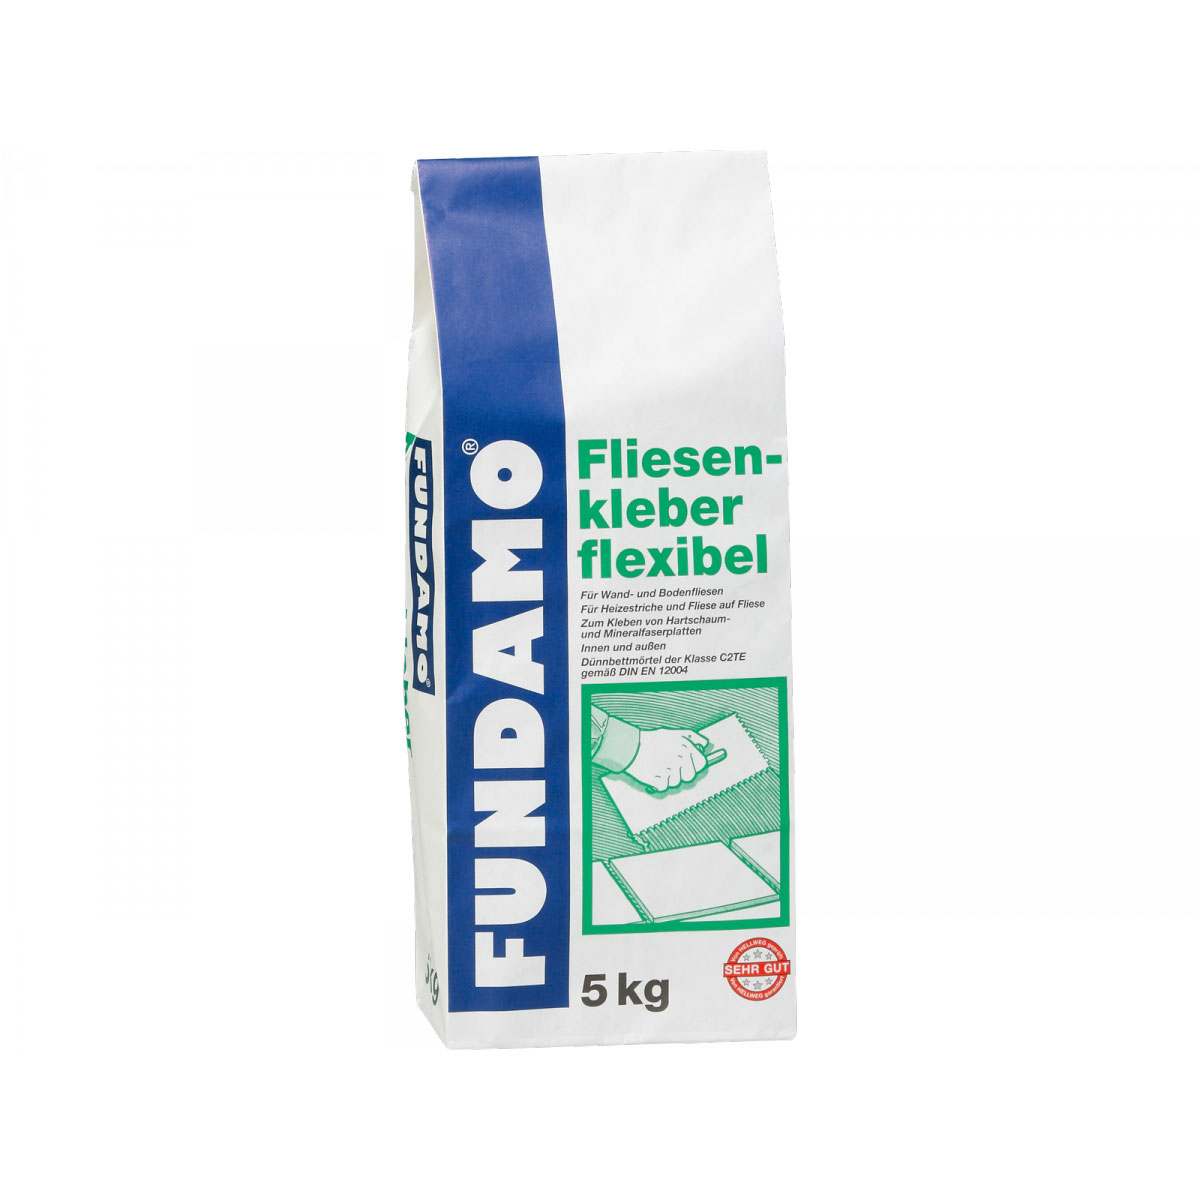 Fundamo Fliesenkleber, flexibel 5 kg